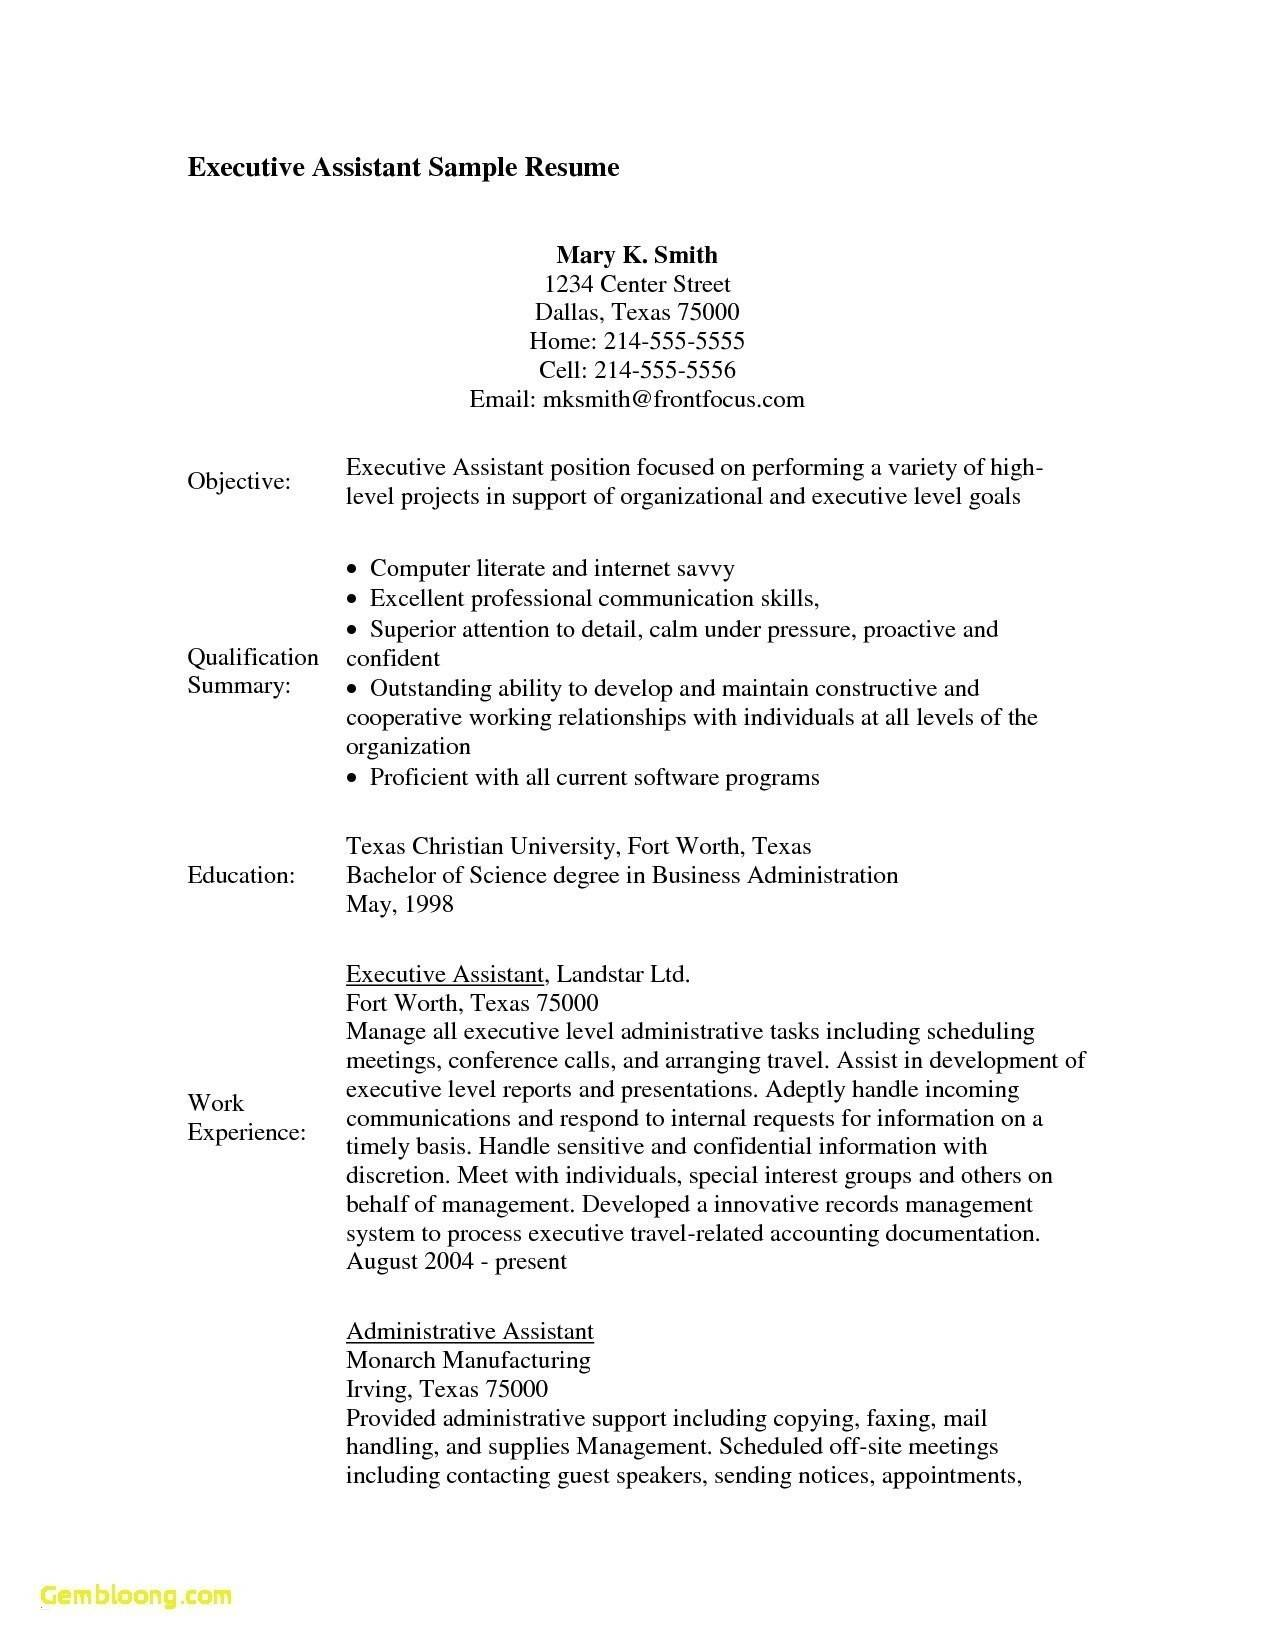 Resume Examples For Medical Administrative Assistant